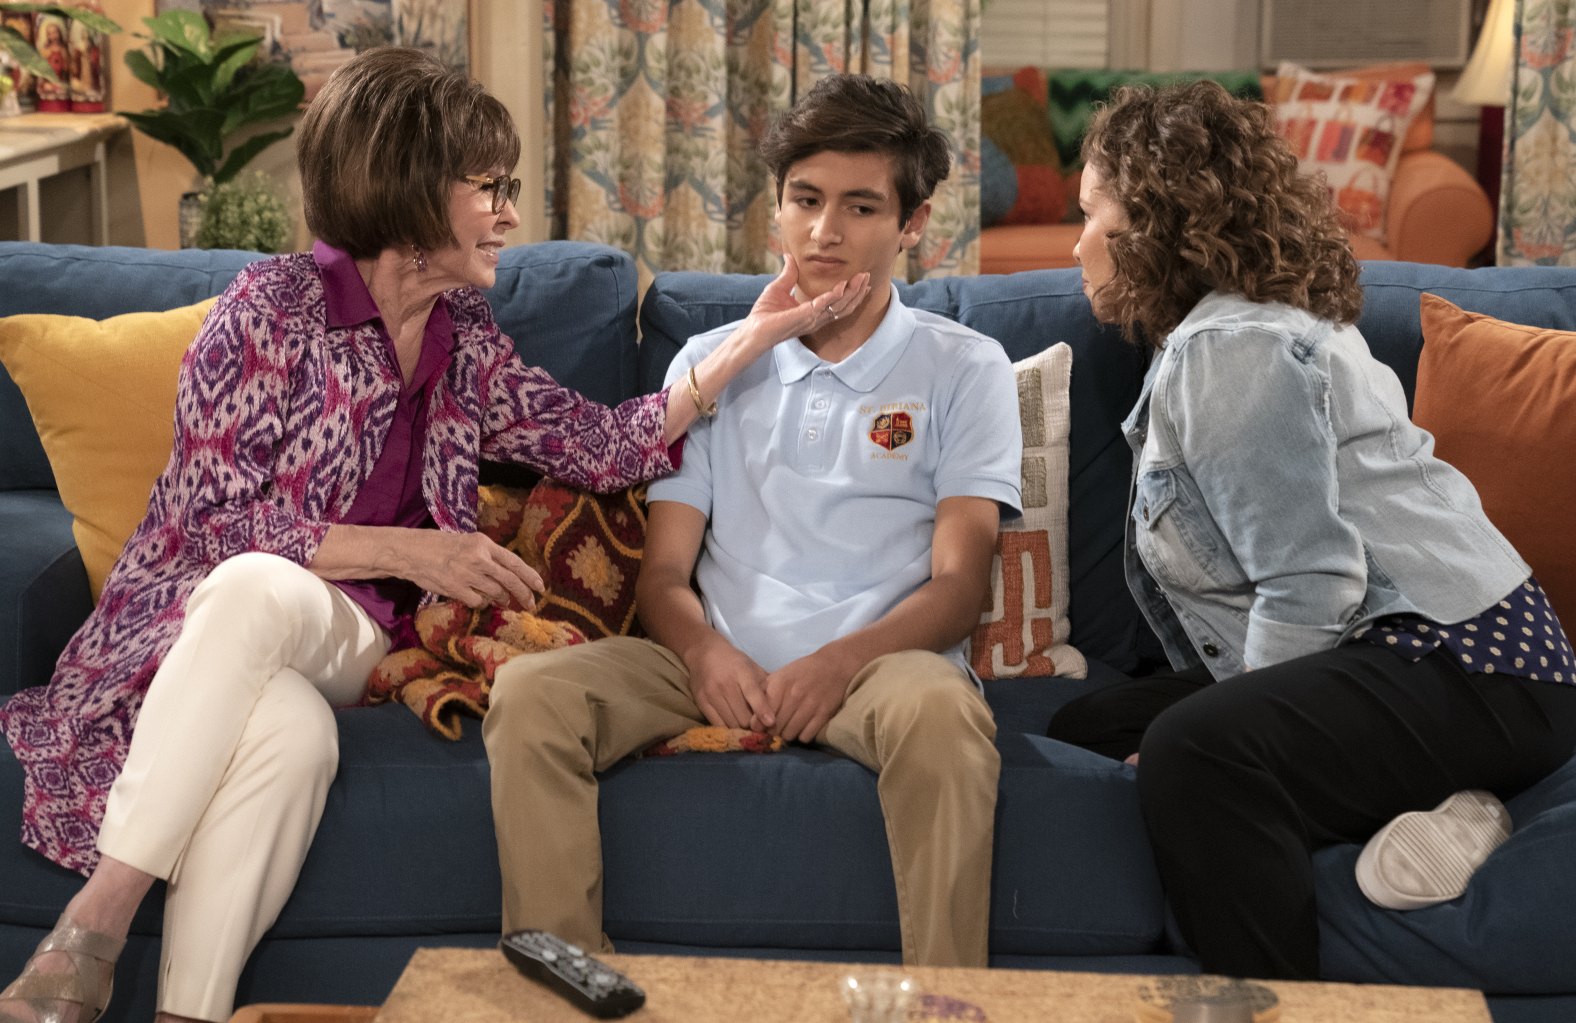 Rita Moreno, Marcel Ruiz and Justina Machado in One Day at a Time. (Pop TV)